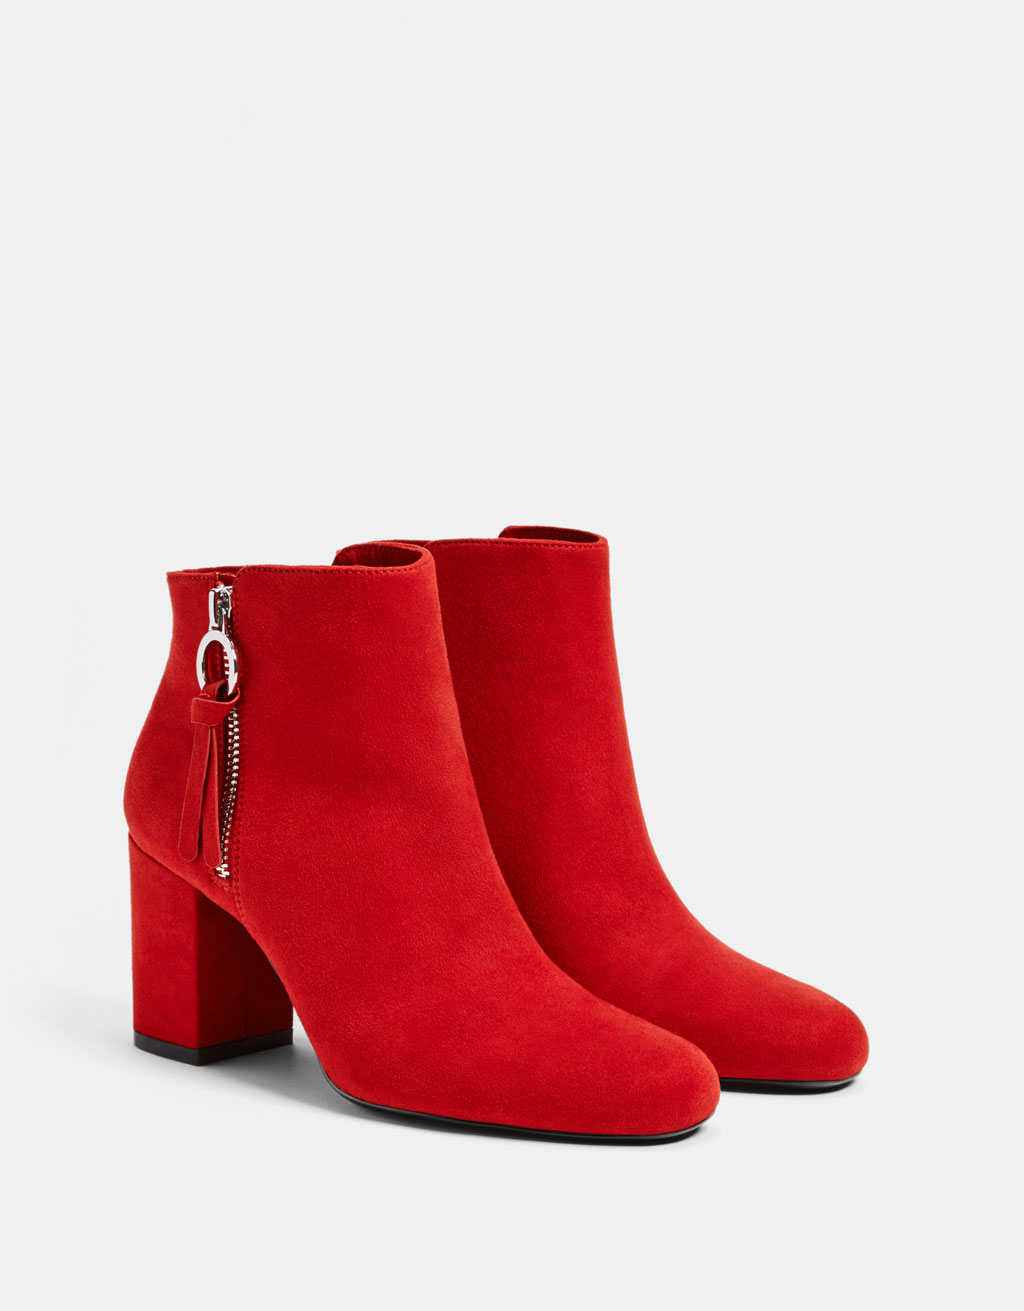 Zip-up high-heel ankle boots